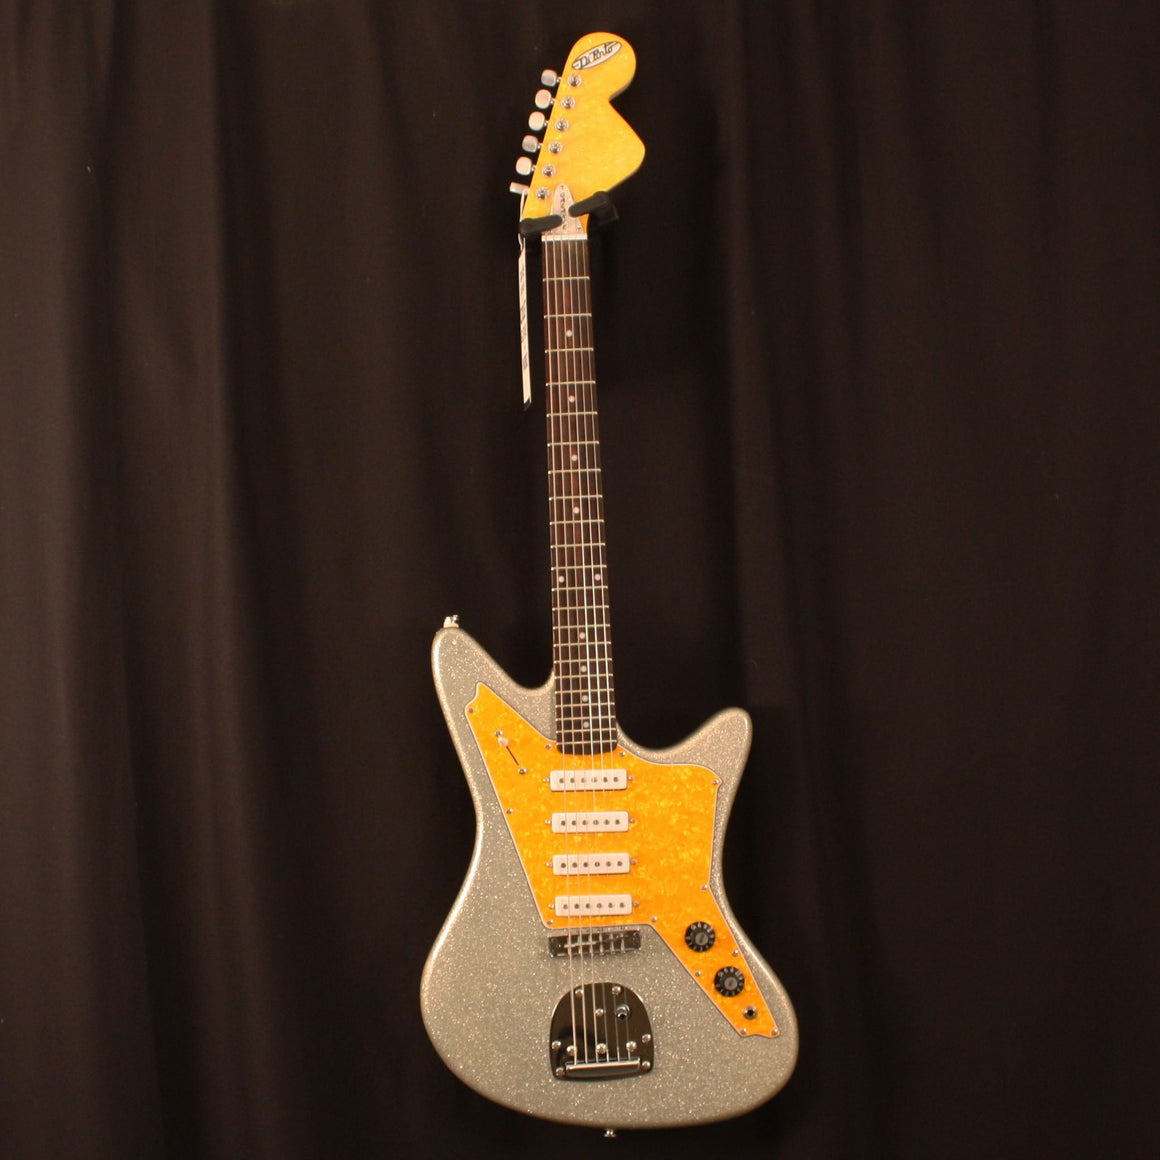 Dipinto Electric Guitar DiPinto Right Handed Signature Eddie Angel Galaxie #001 Limited Edition Electric Guitar